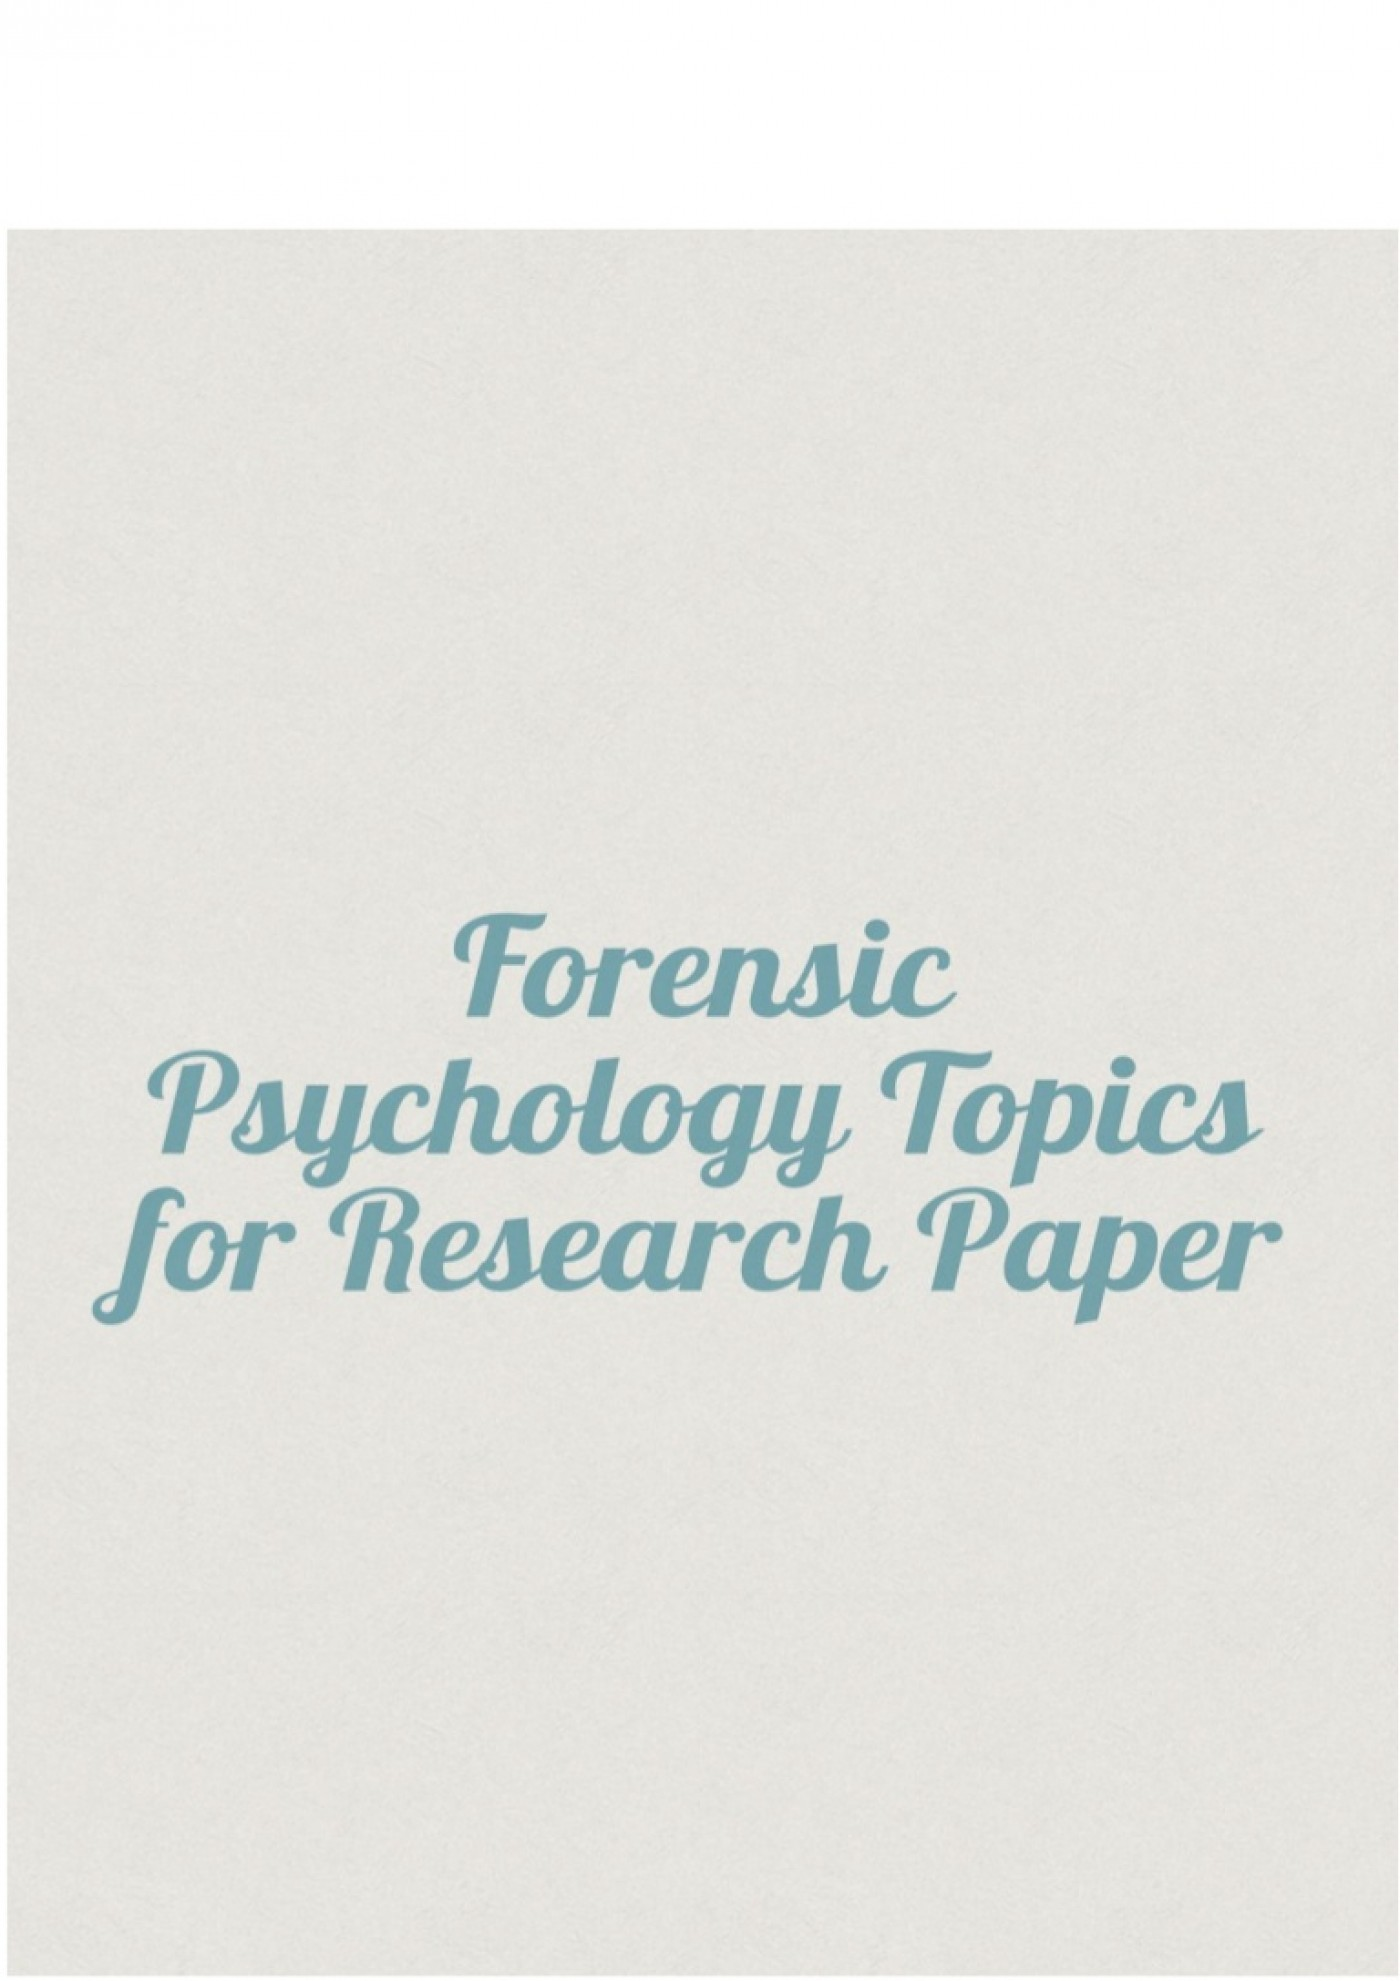 008 Psychology Topics For Research Paper Forensicpsychologytopicsforresearchpaper Thumbnail Wondrous Child Papers Abnormal 1400